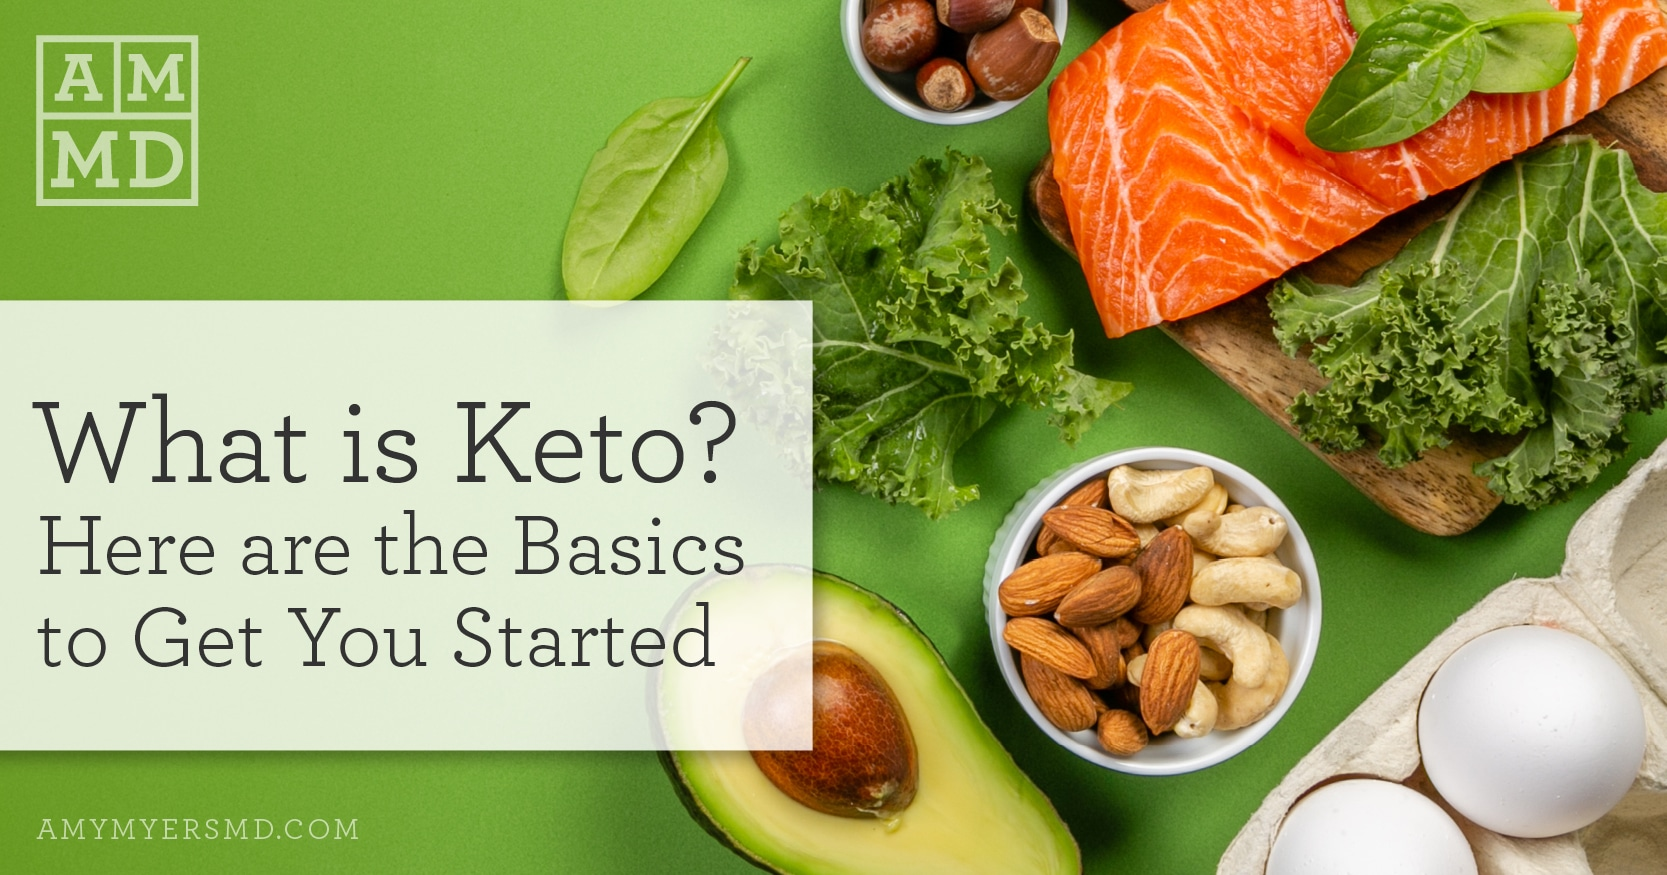 what is keto? here are the basics